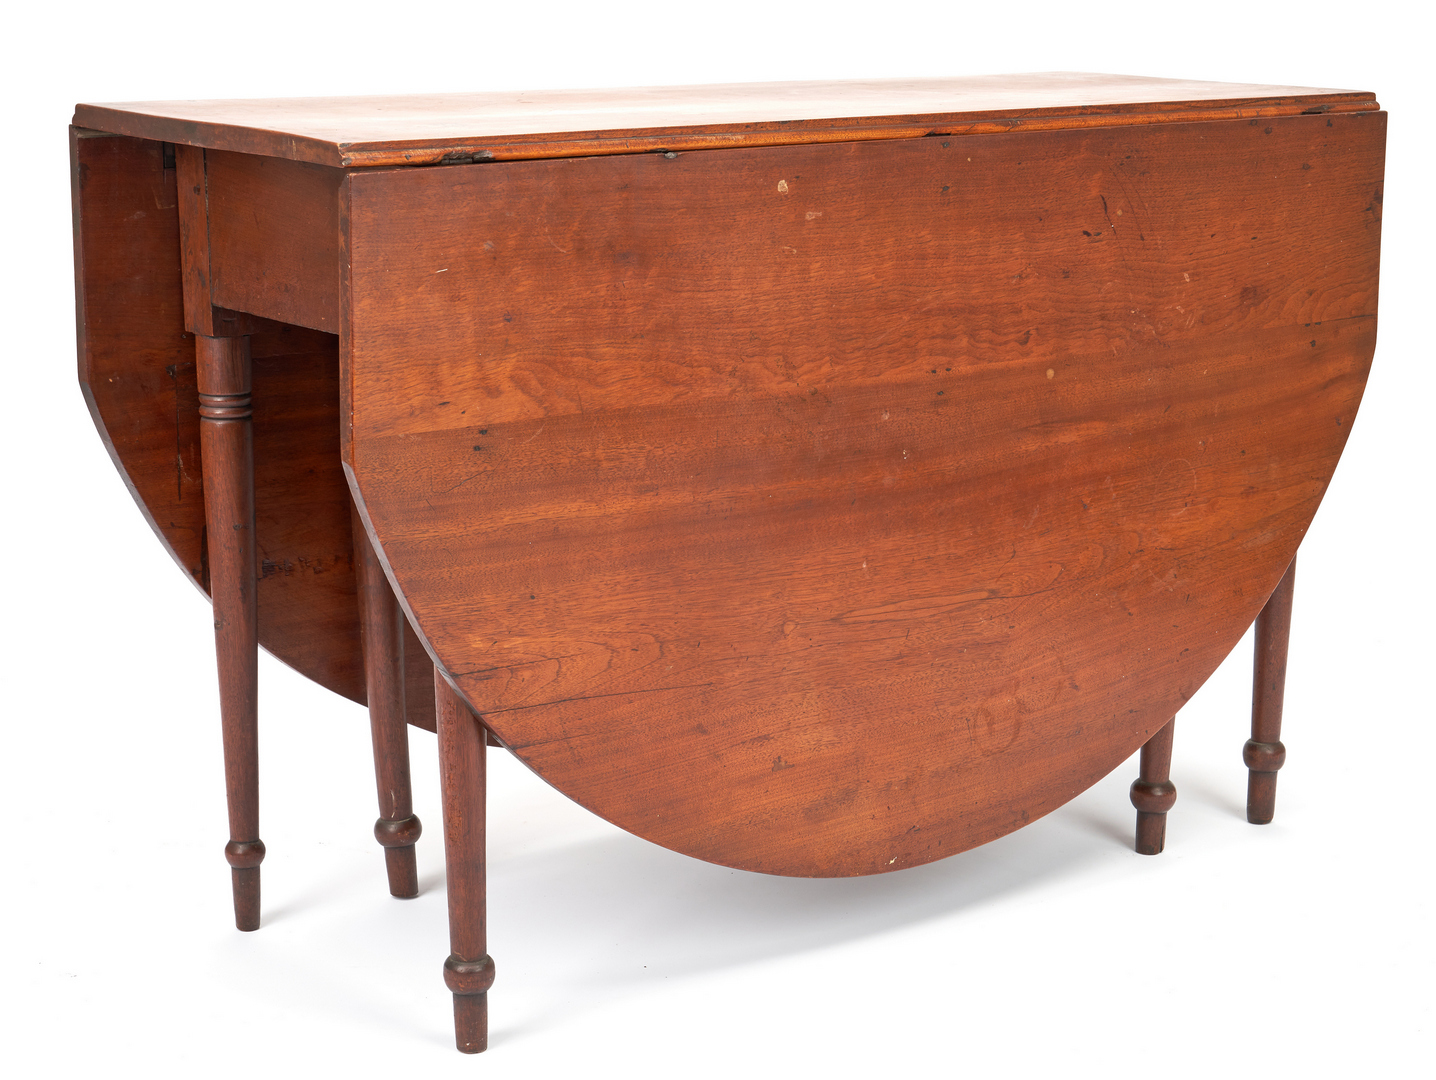 Lot 361: Virginia Sheraton Drop Leaf Table, Signed